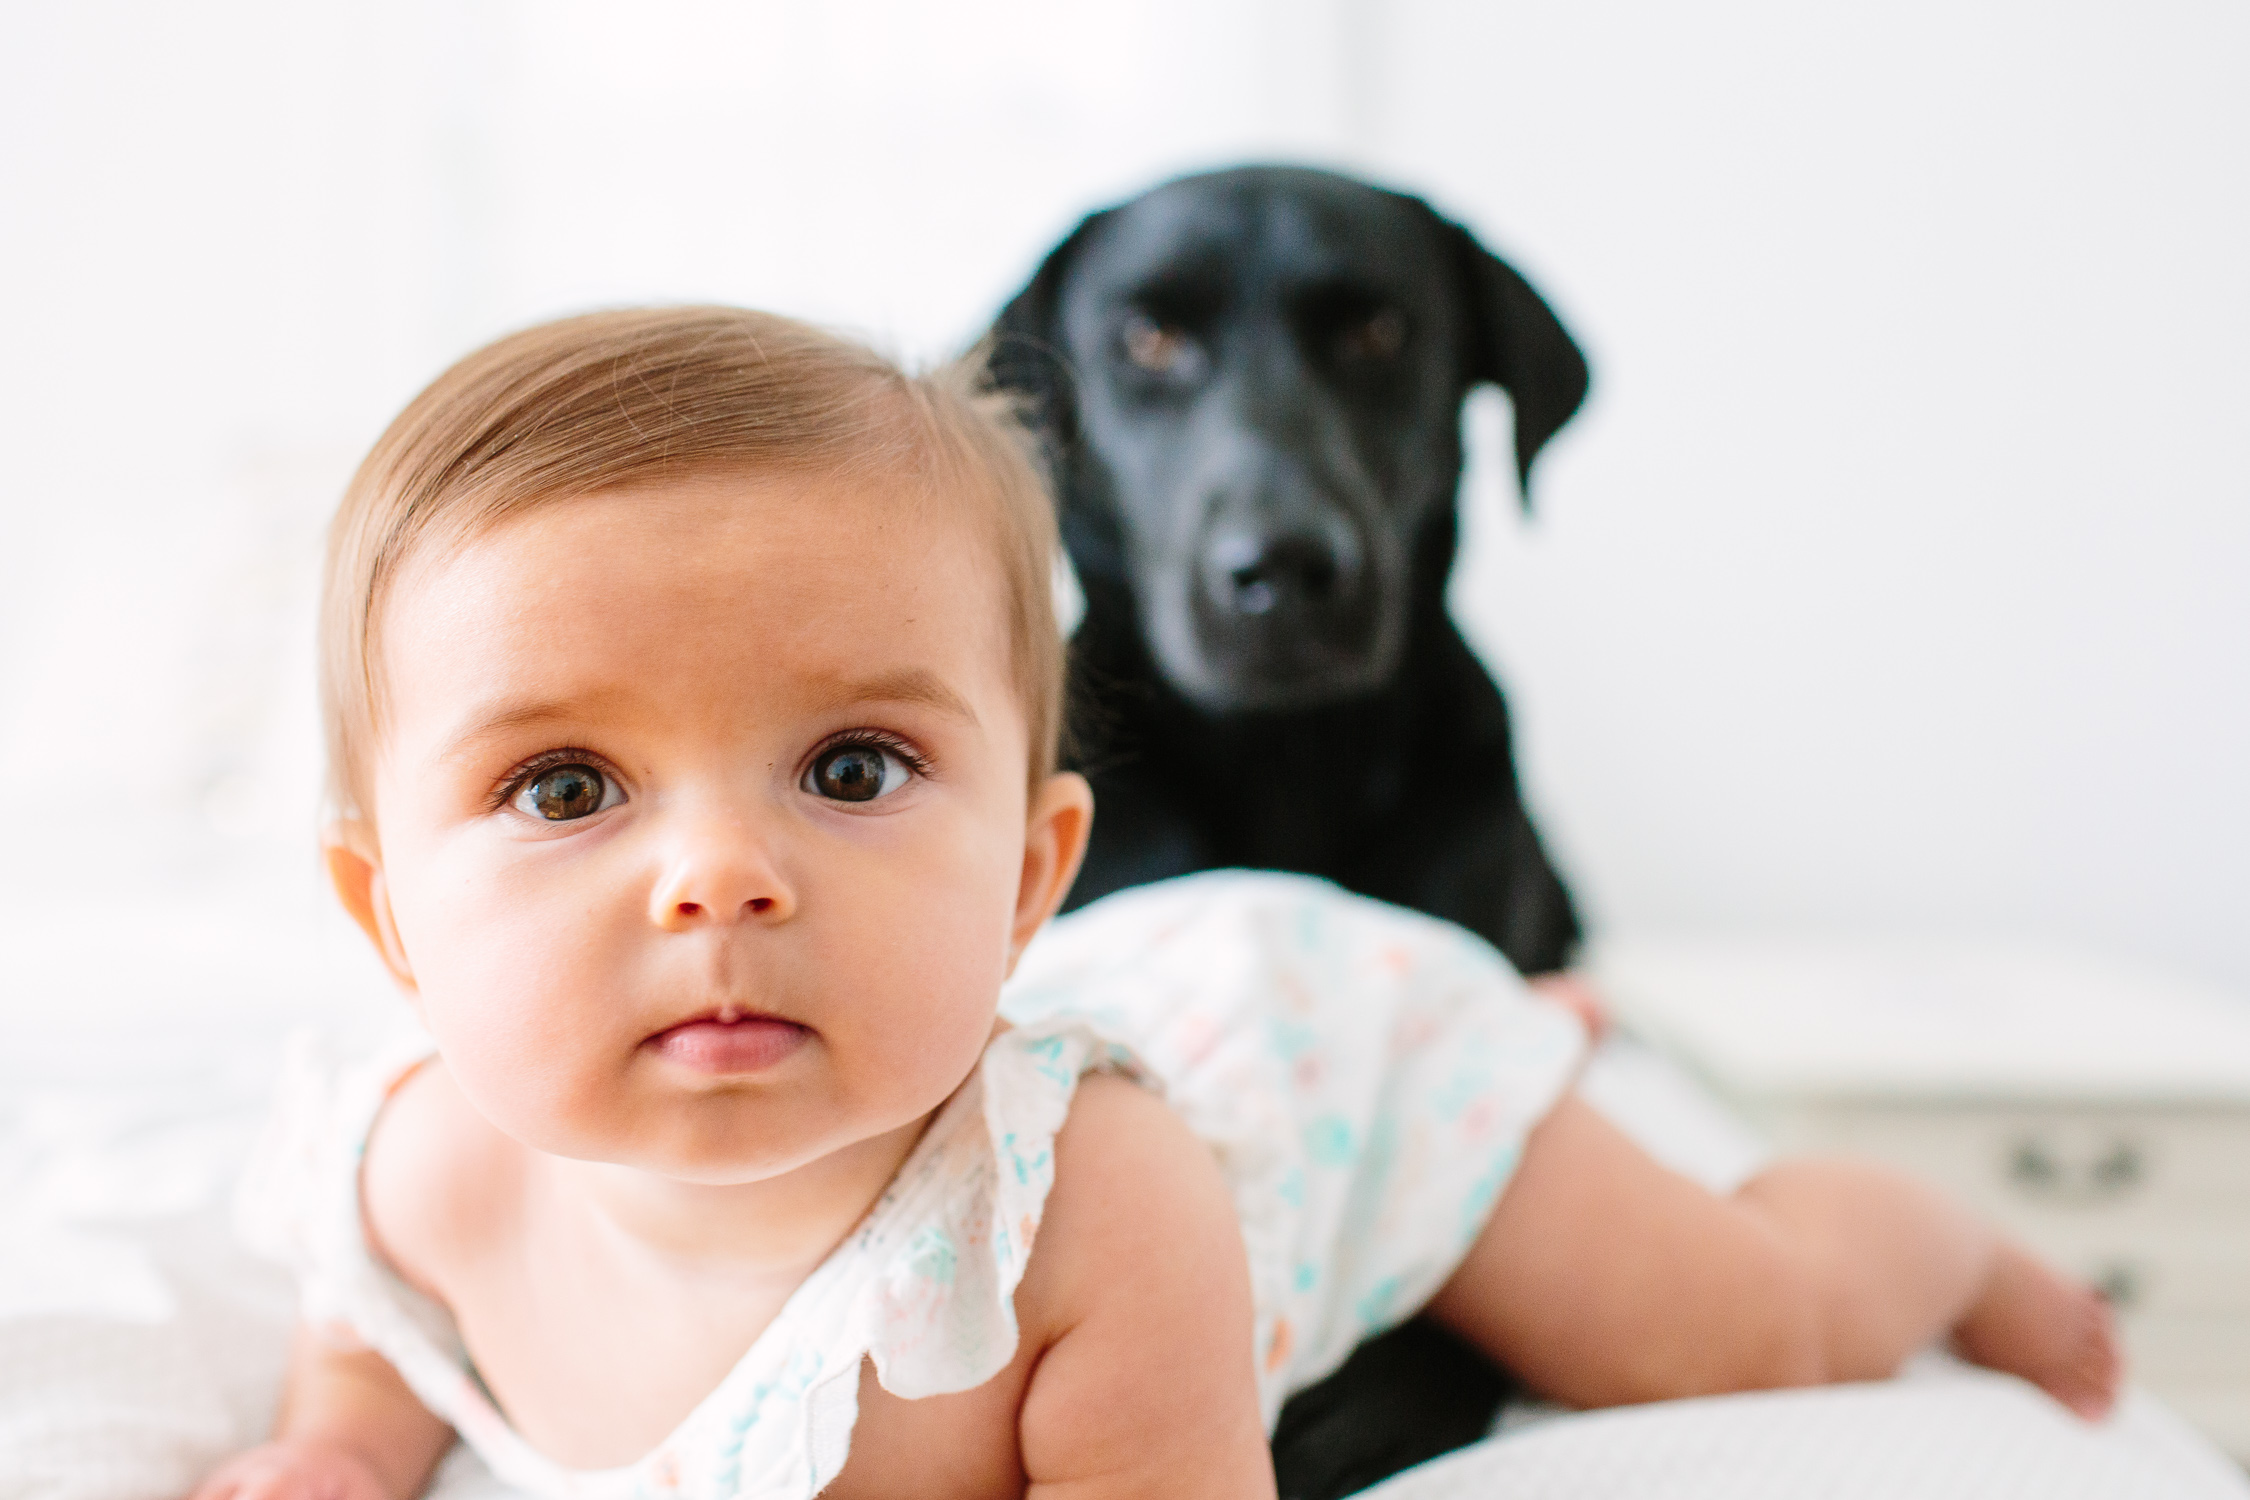 Puppy Before Baby? // Knoxville Photographer family, business, personal, photographer, tips, baby, lifestyle, newborn, indoor, ideas, kids, creative, mom, at home, light and airy, natural light, photoshoot, inspiration, dog, bedroom, in home